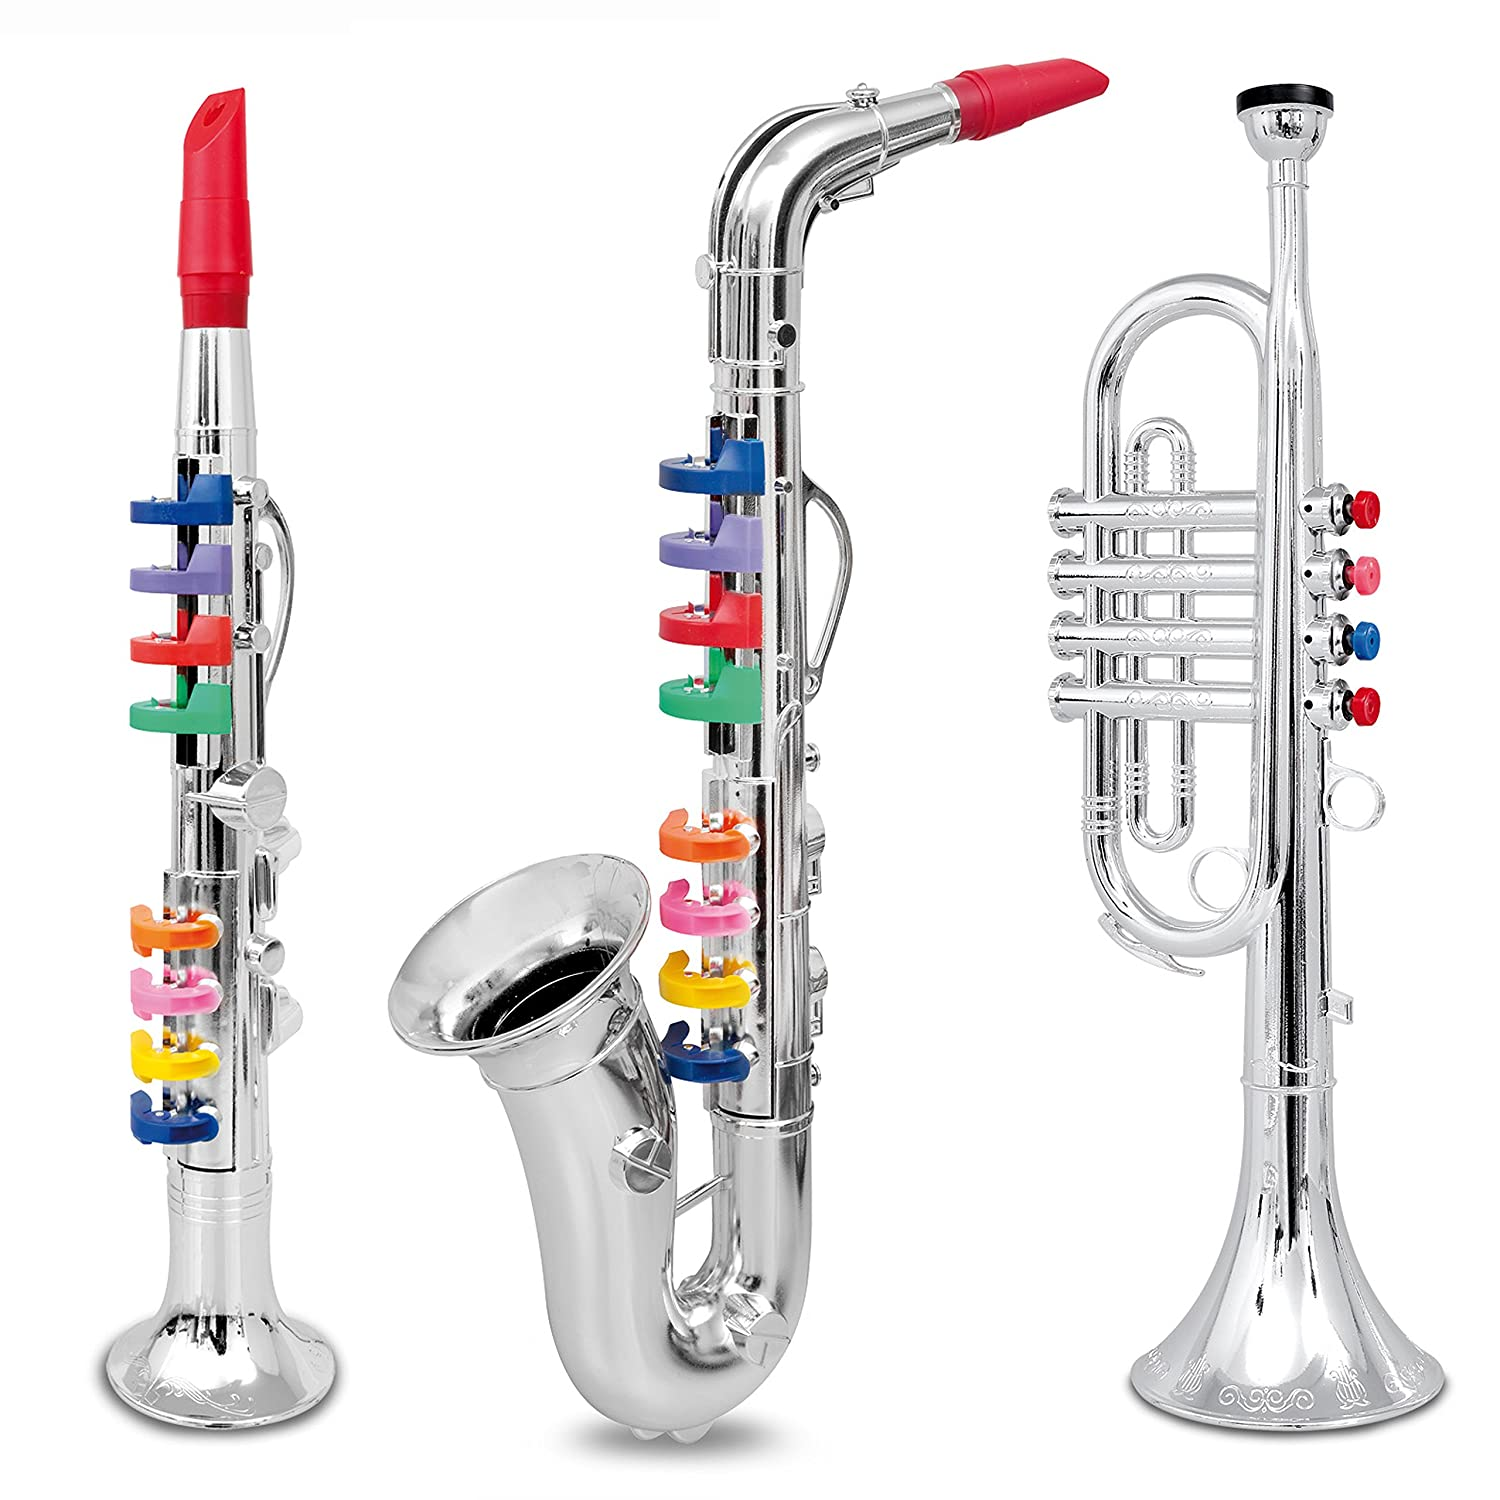 Set of 3 Music 1. Clarinet 2. Saxophone 3. Trumpet,